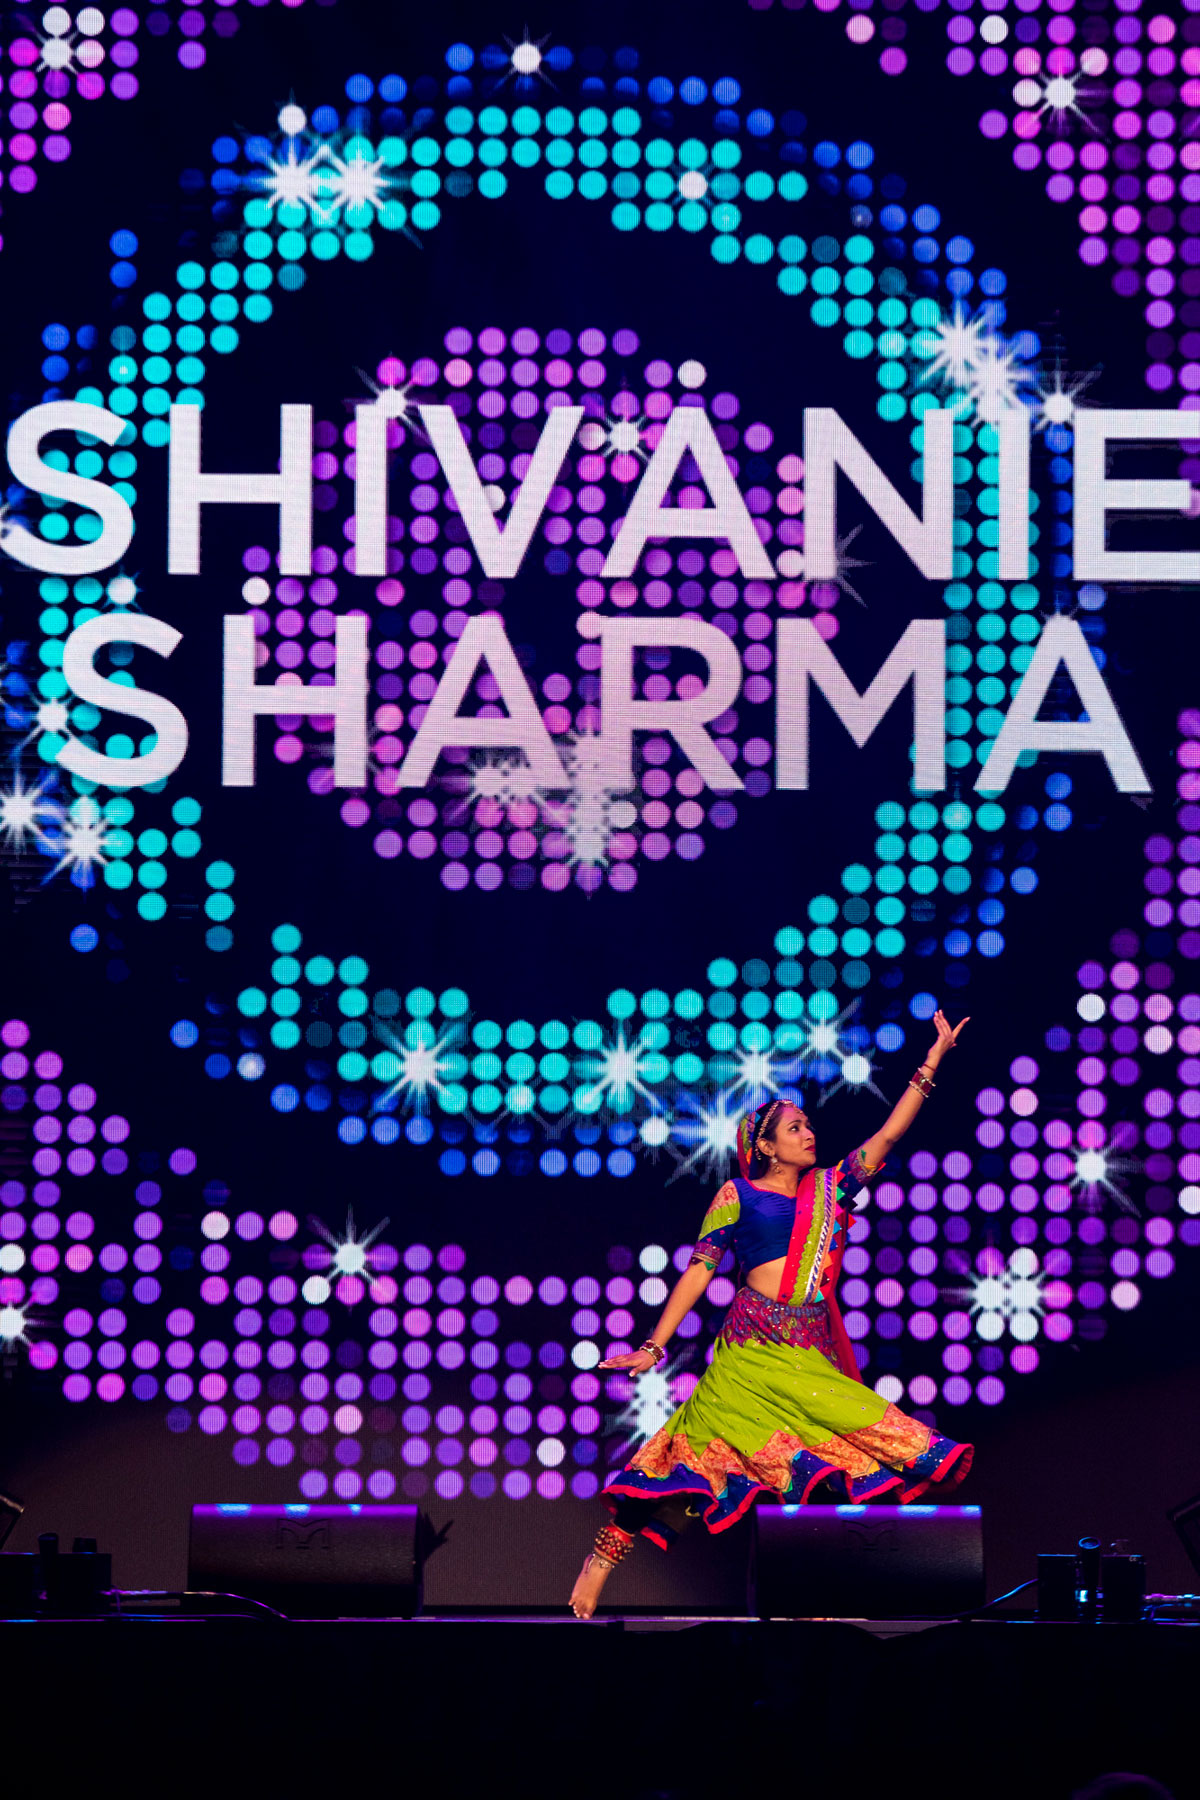 A young woman dances in front of an electronic board lit up in green and purple swirls